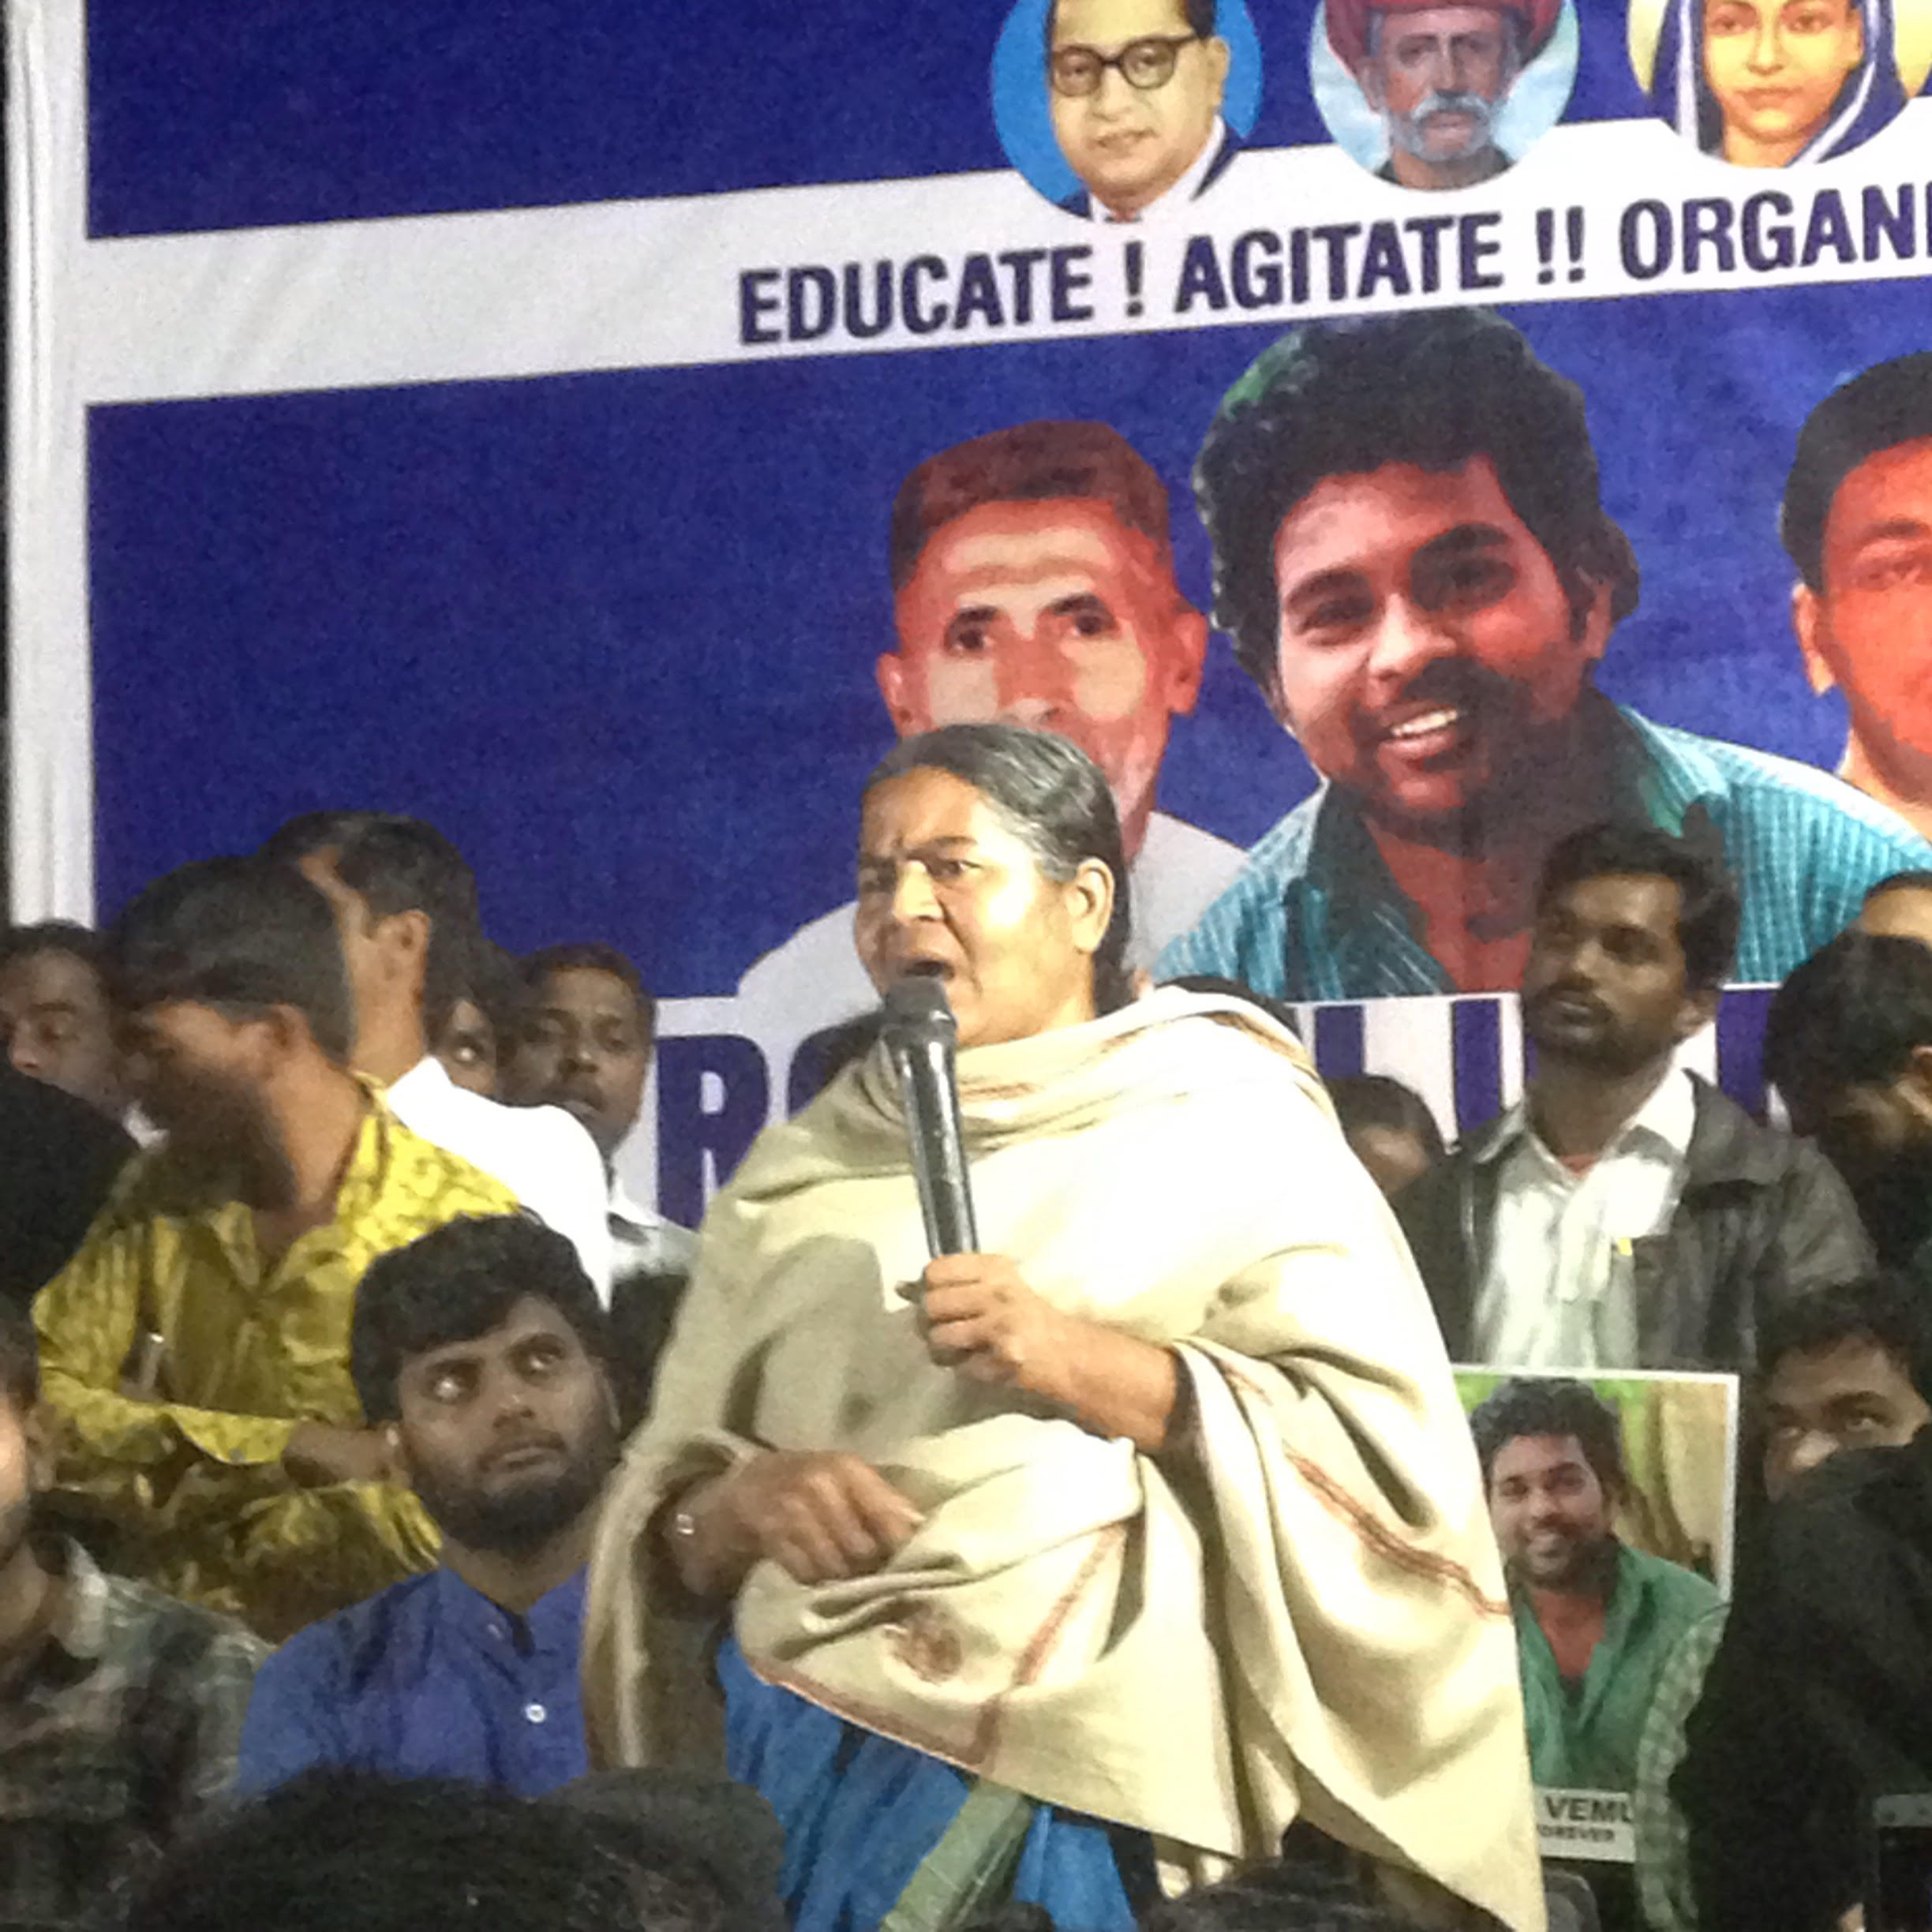 The protest was meant to begin with Rohith's mother, Radhika Vemula garlanding his statue inside the campus. However, with the Vice Chancellor issuing a circular the night before which explicitly did not allow outsiders to enter the campus, the students marched to the university gate. Credit: Makepeace Sitlhou